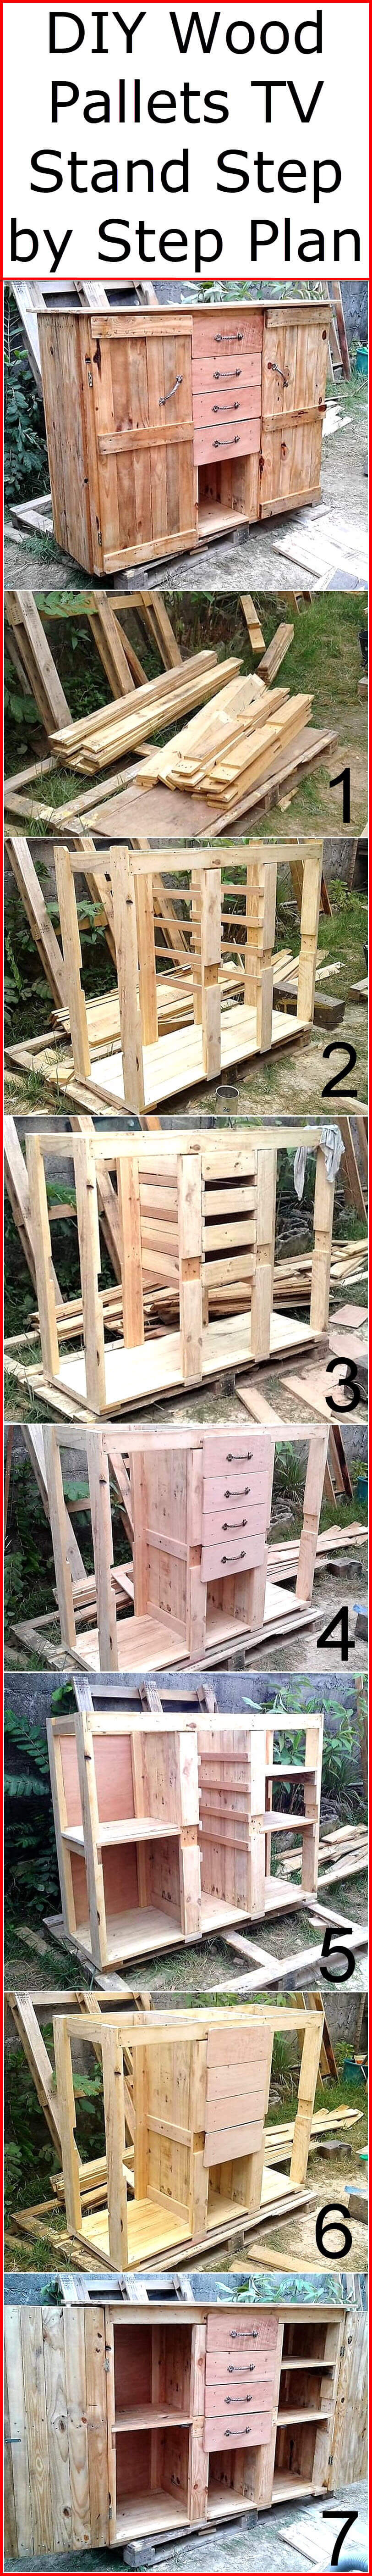 DIY Wood Pallets TV Stand Step by Step Plan